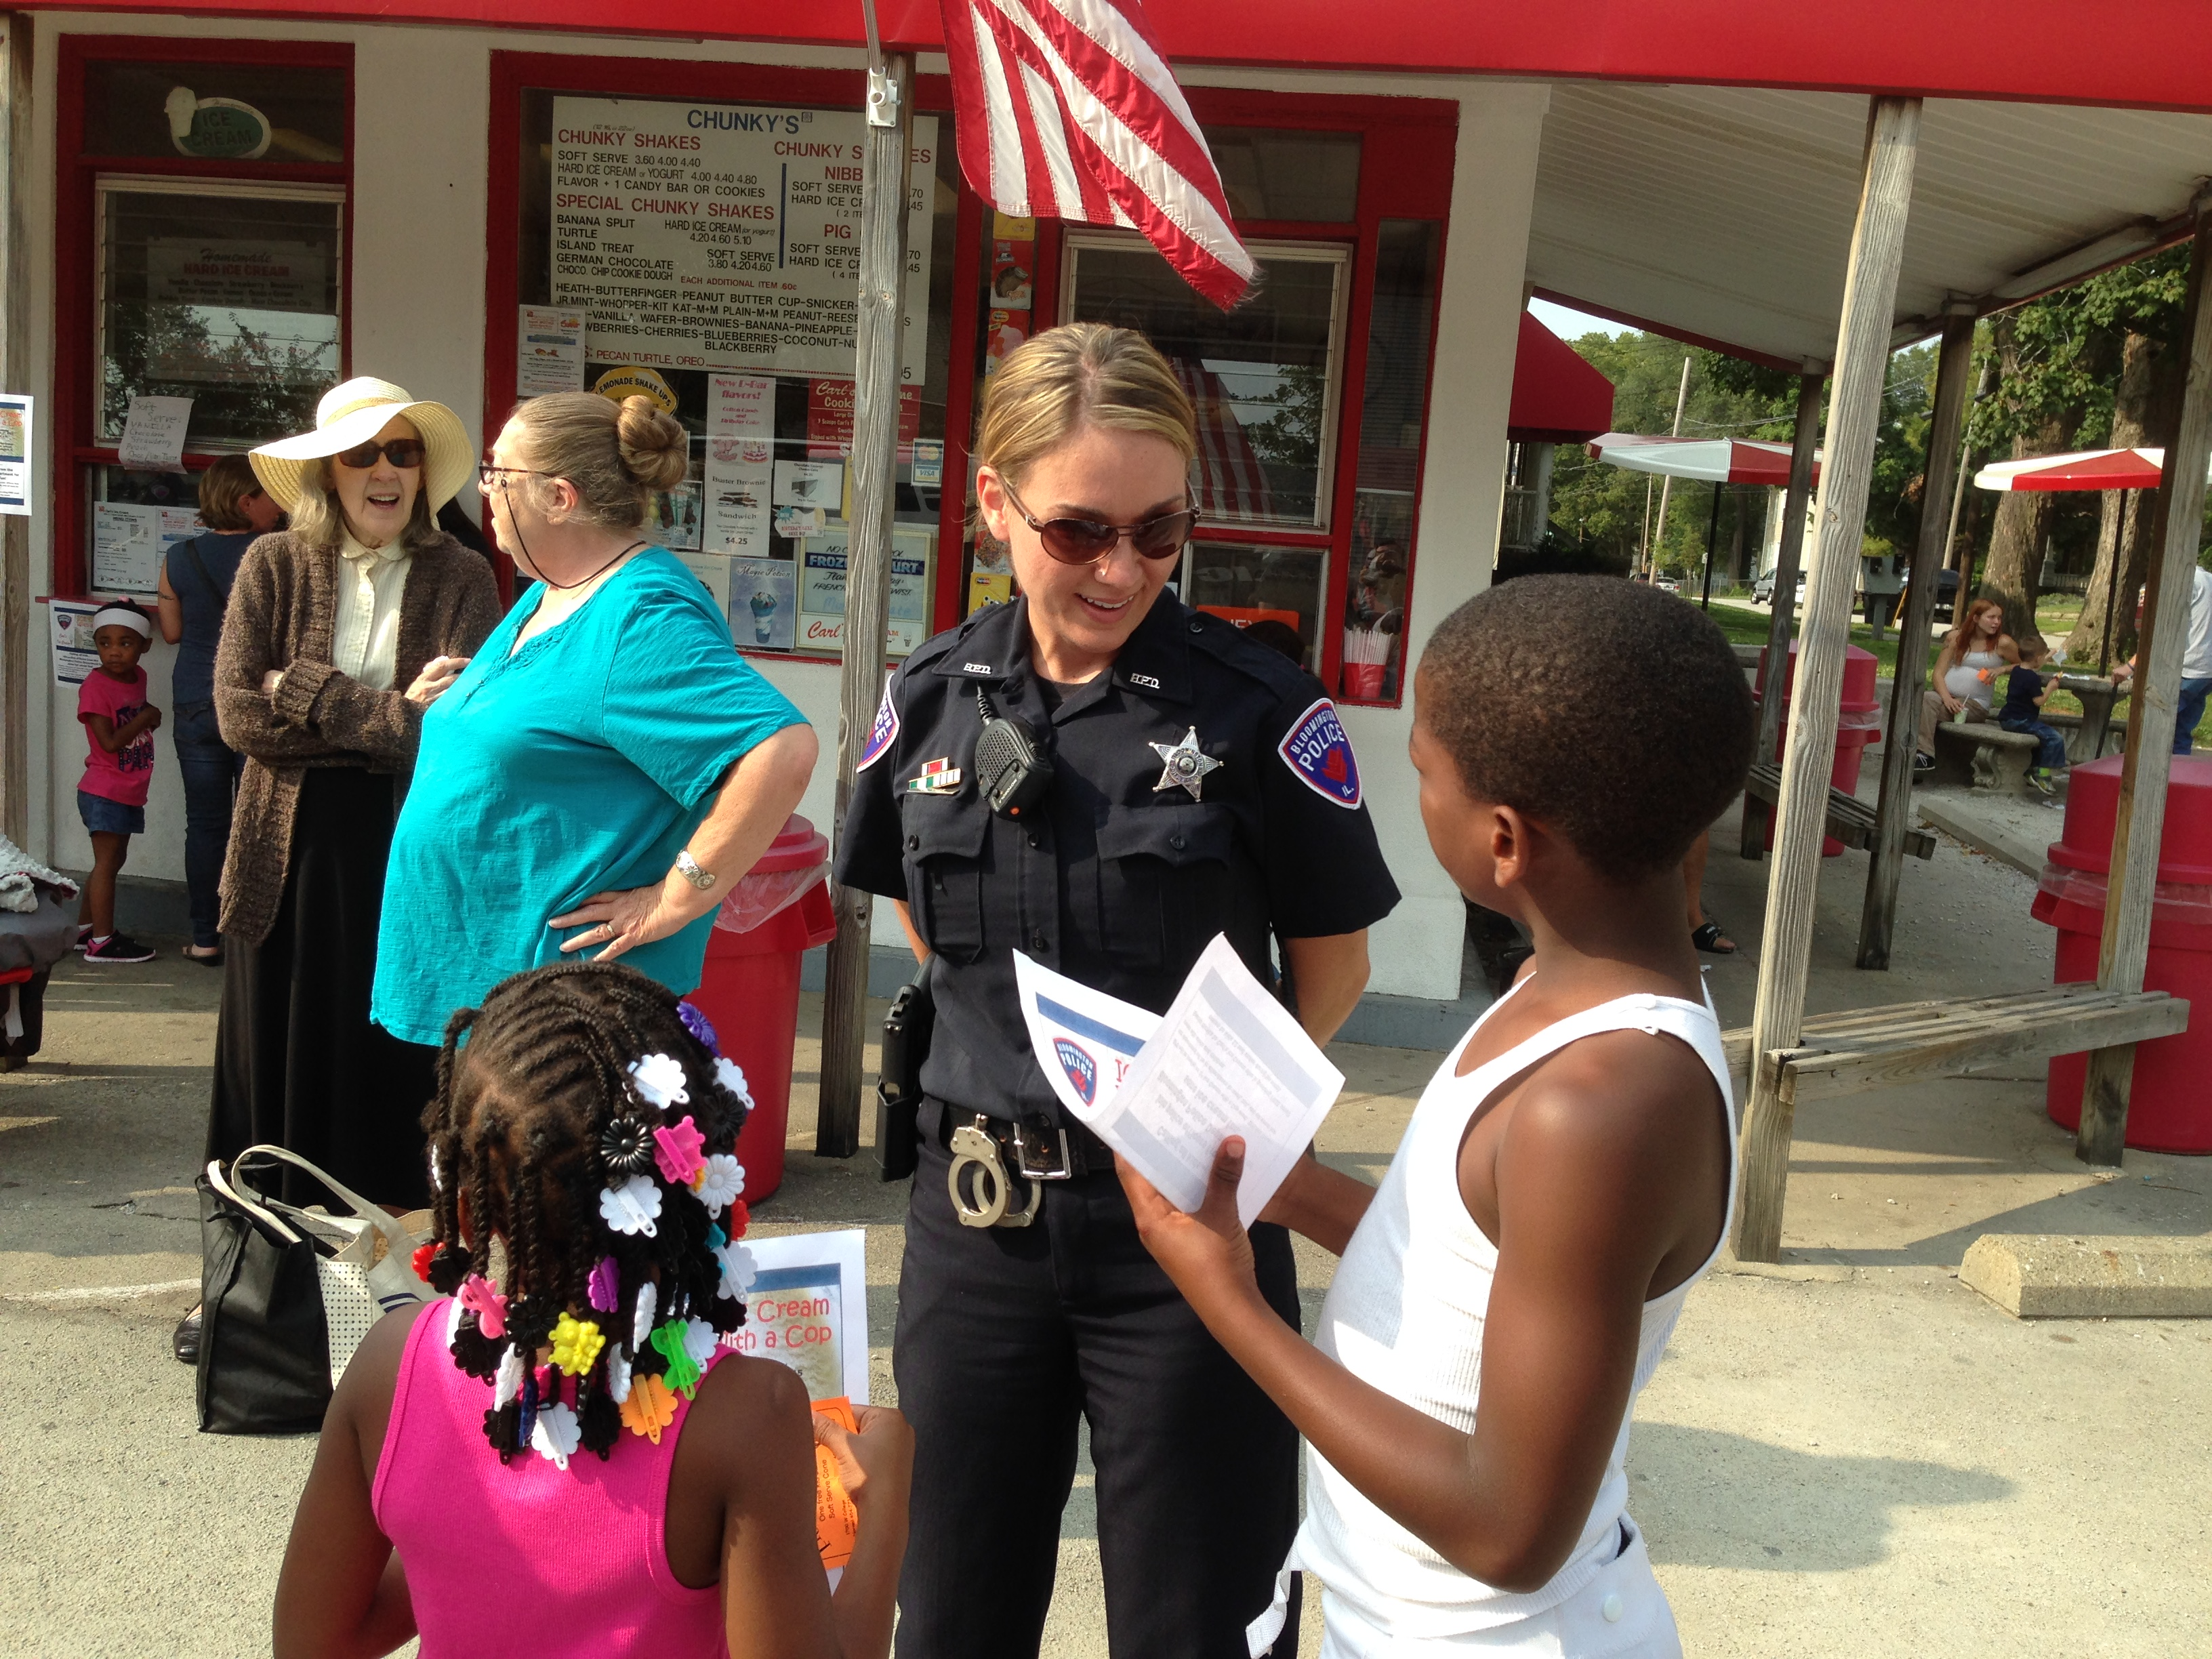 race and ethnicity in police employment Law enforcement and race  missouri—and many communities across the country—between police agencies and many citizens, particularly in communities of color  jobs, and role models too .